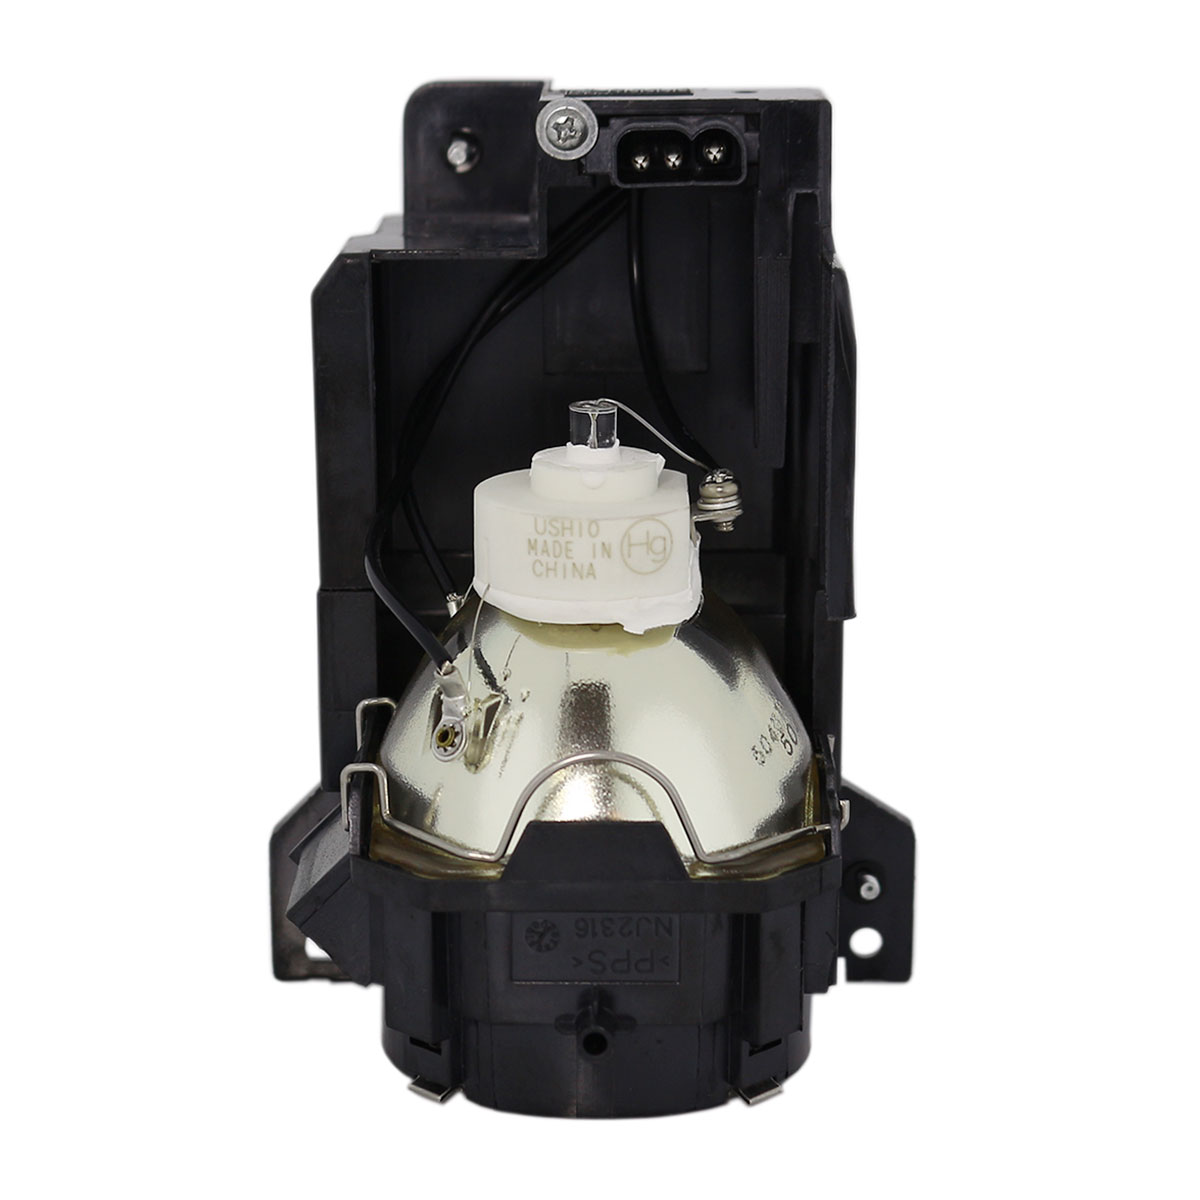 Original Ushio Projector Lamp Replacement for 3M 78-6969-9998-2 (Bulb Only) - image 3 de 5